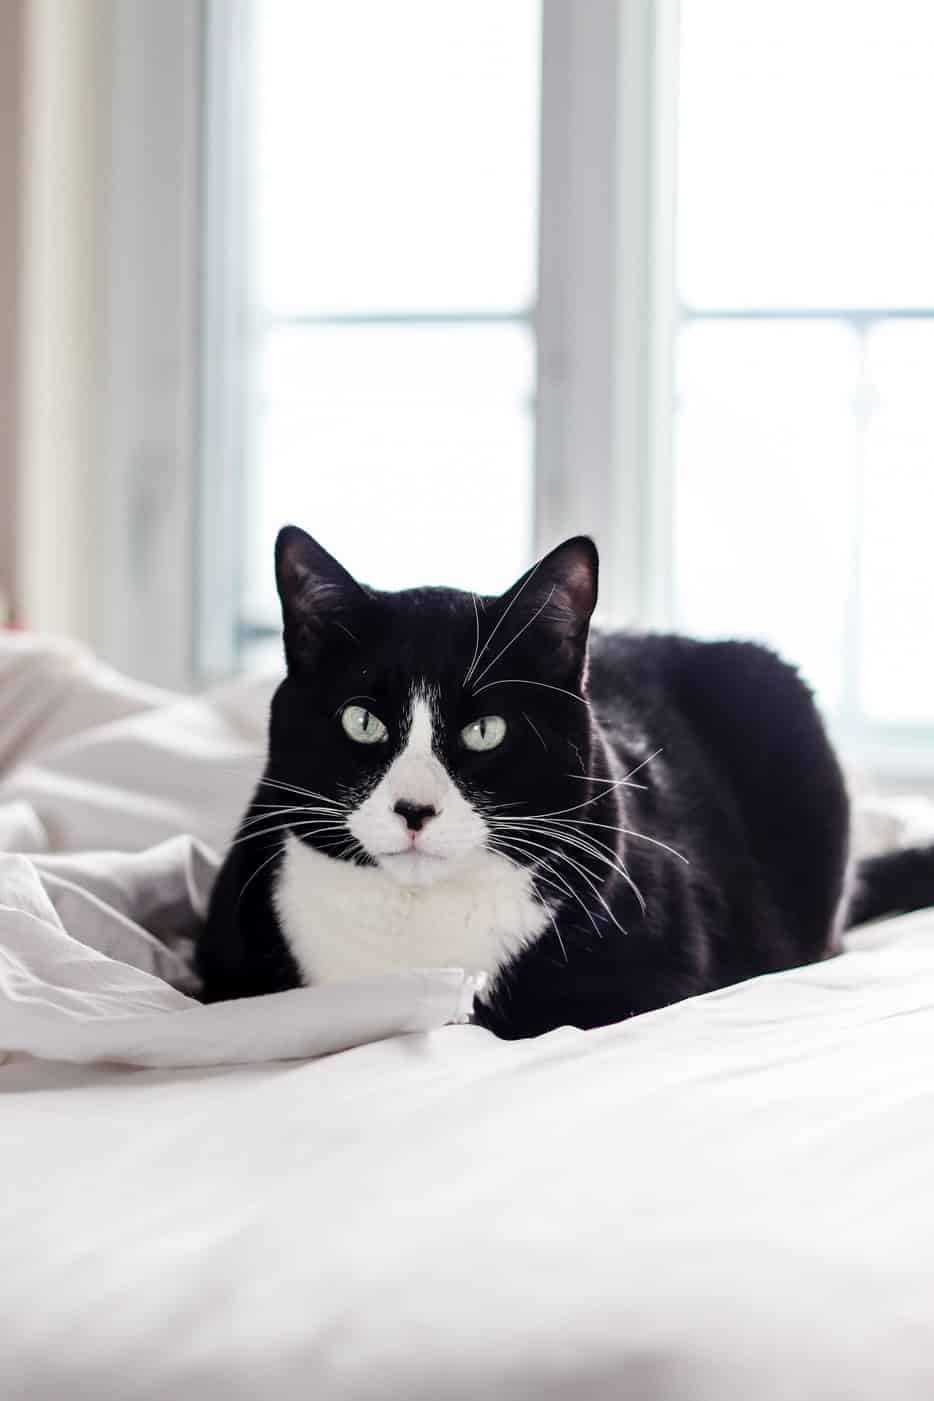 black and white cat laying on the bed. Black and white cat names often reference their unique markings